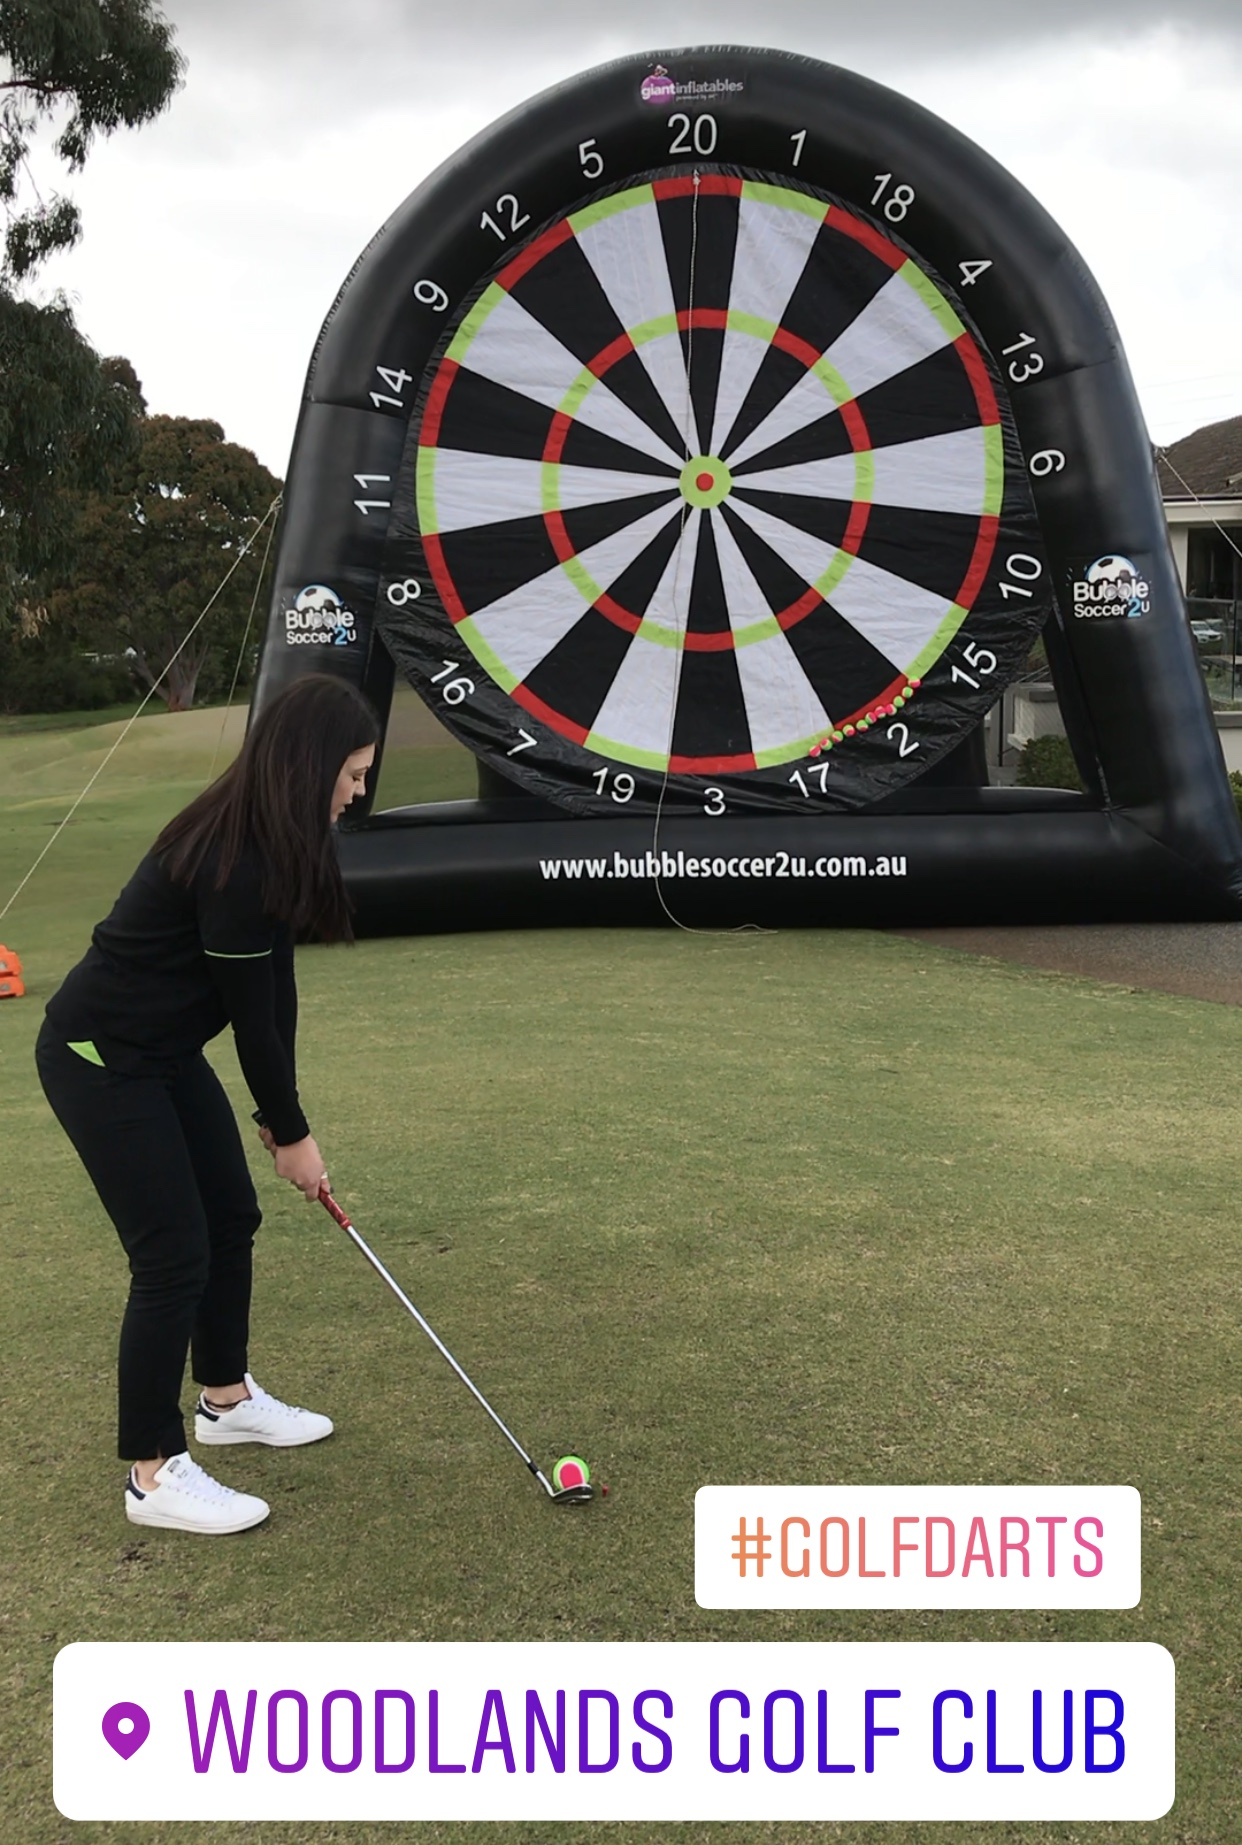 Golf Darts was a major hit, with groups having a go before the 1st tee. A few prizes were on offer and over $1,500 was raised on the day!